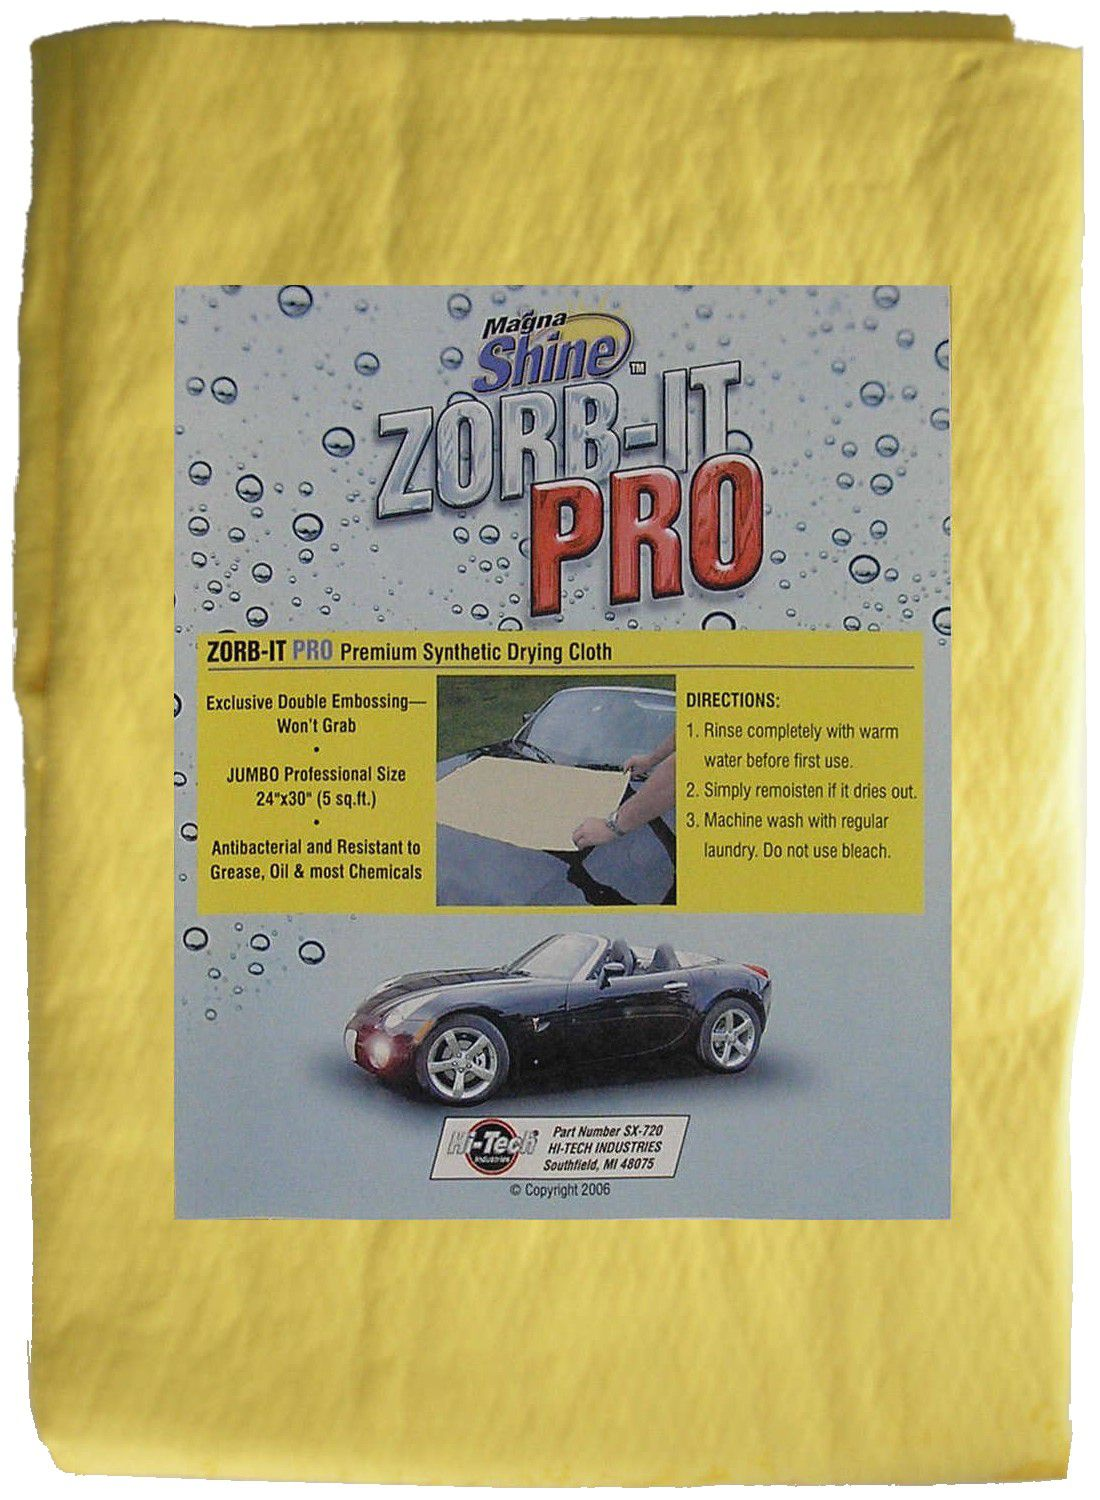 ZORB-IT™ Pro Synthetic Drying Cloth